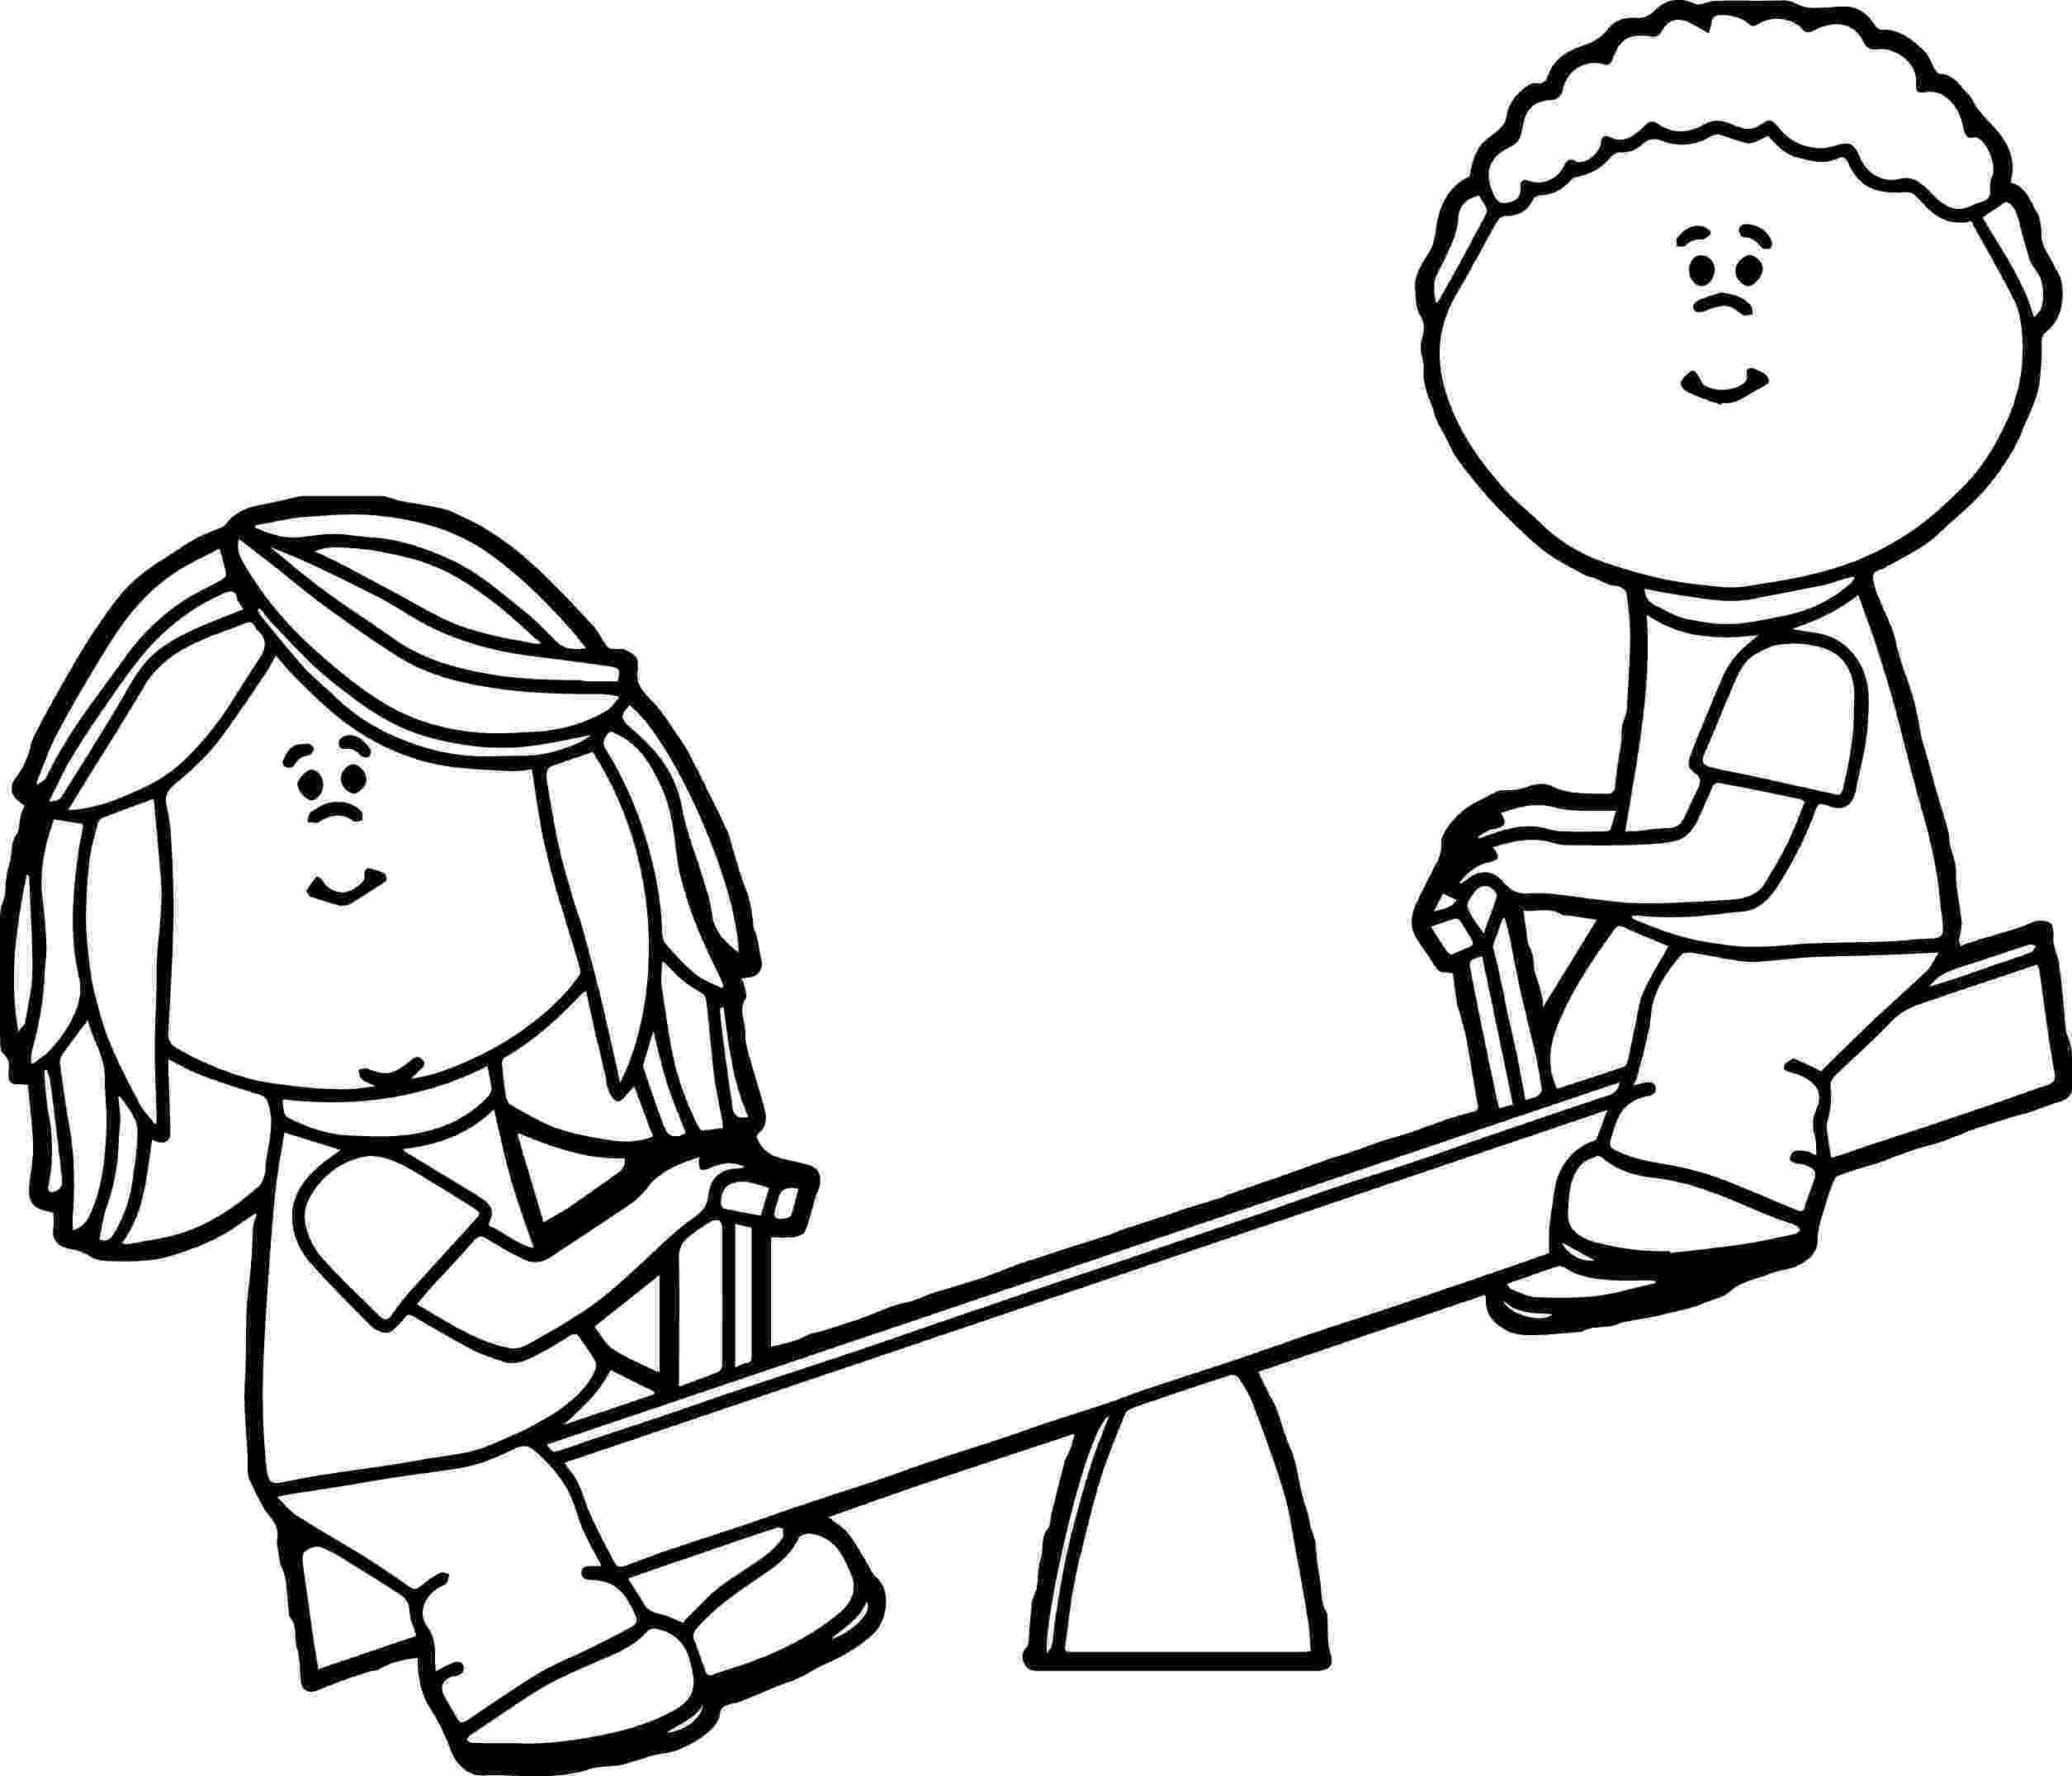 nrl coloring pages messi coloring pages easter dinner coloring page yom nrl pages nrl coloring